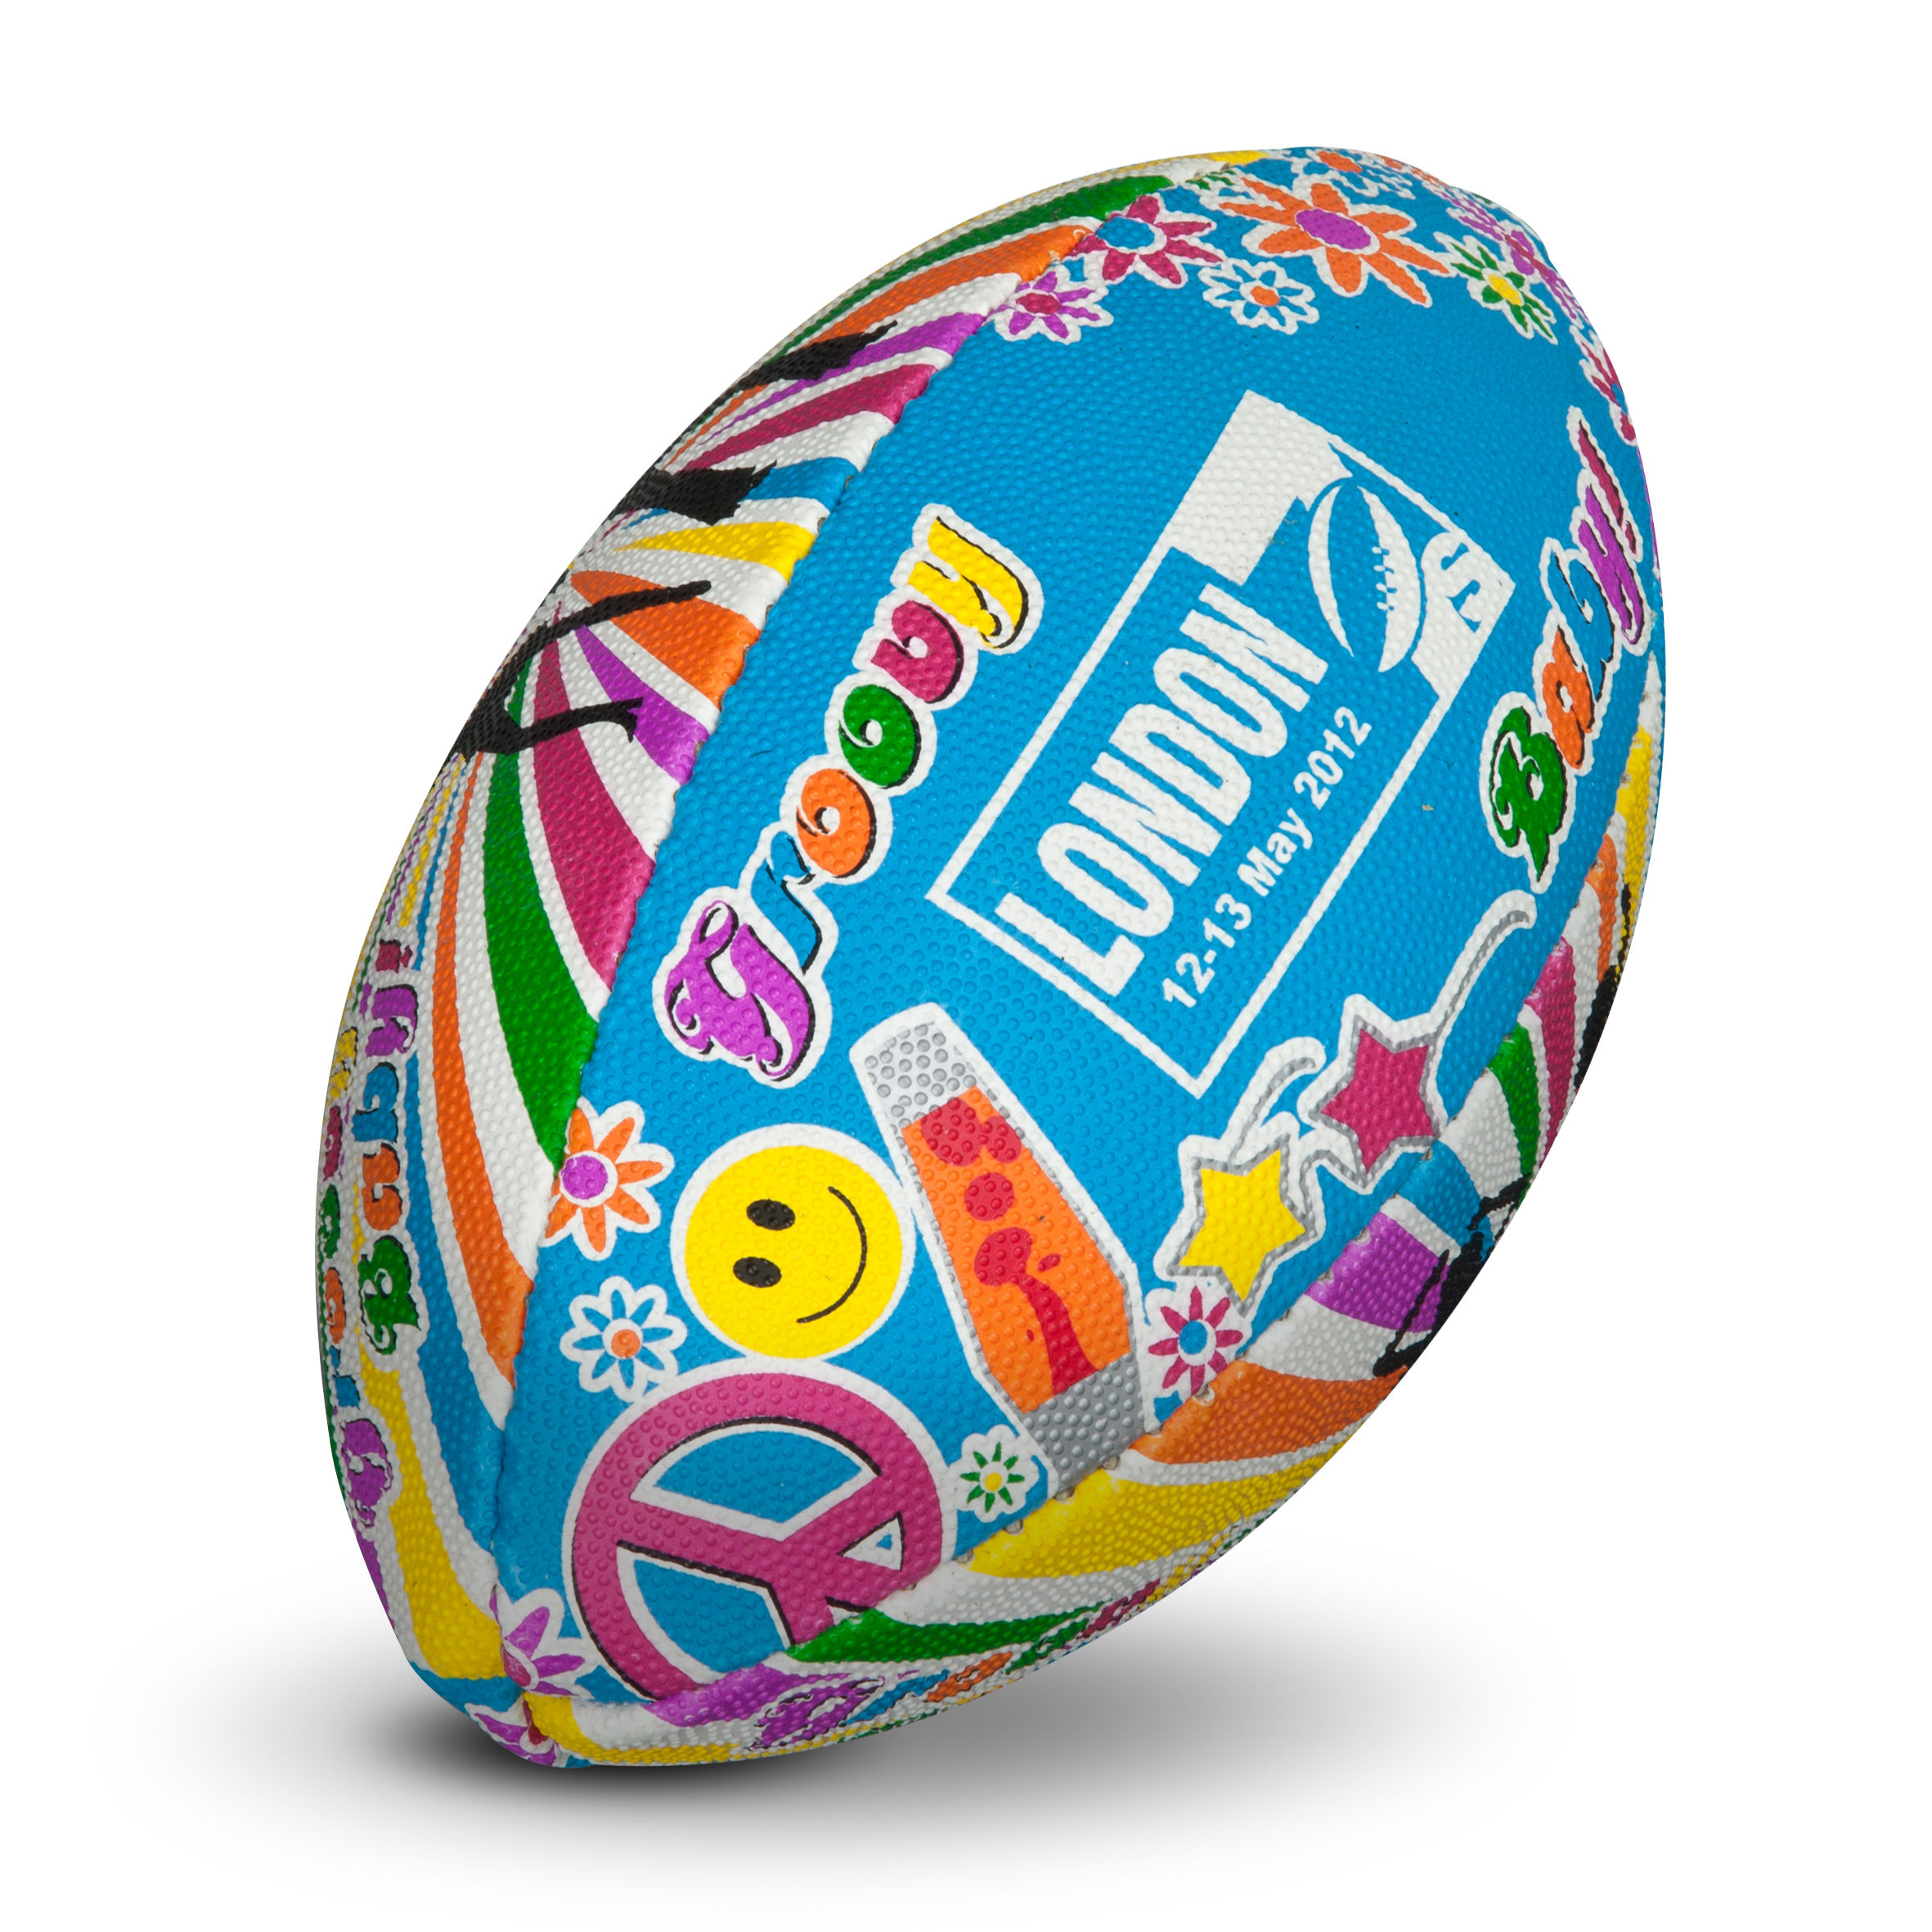 London 7's Tournament 70s Rugby Ball - Mini Ball. for 8€